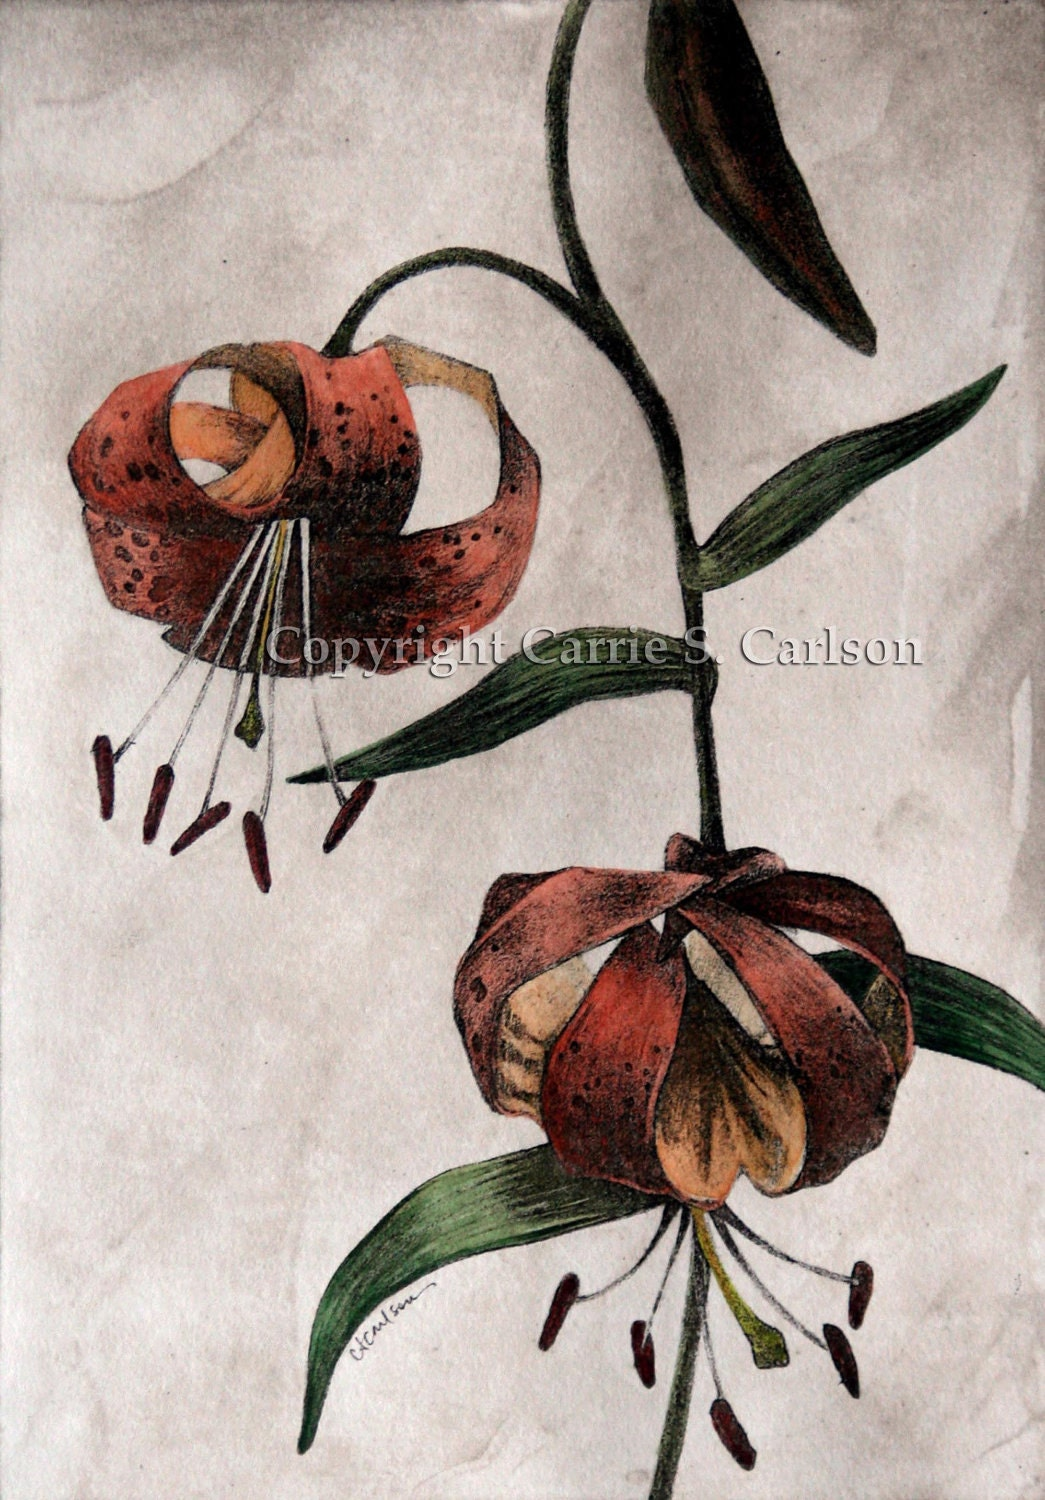 Tiger Lilies - print of original hand-colored solarplate etching 8x10 - CarrieCarlson